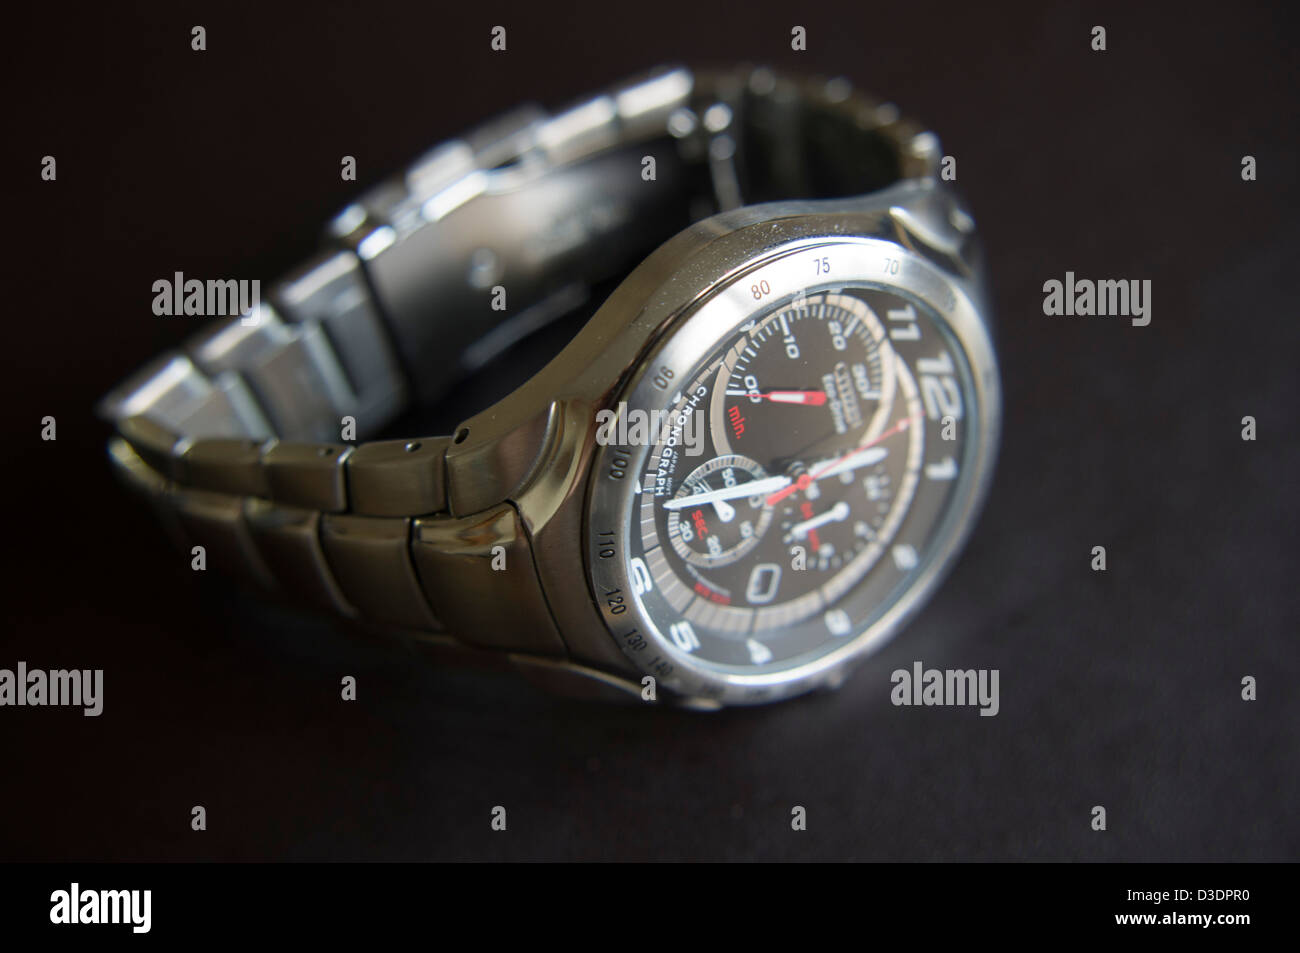 mens stainless steel chronograph watch - Stock Image